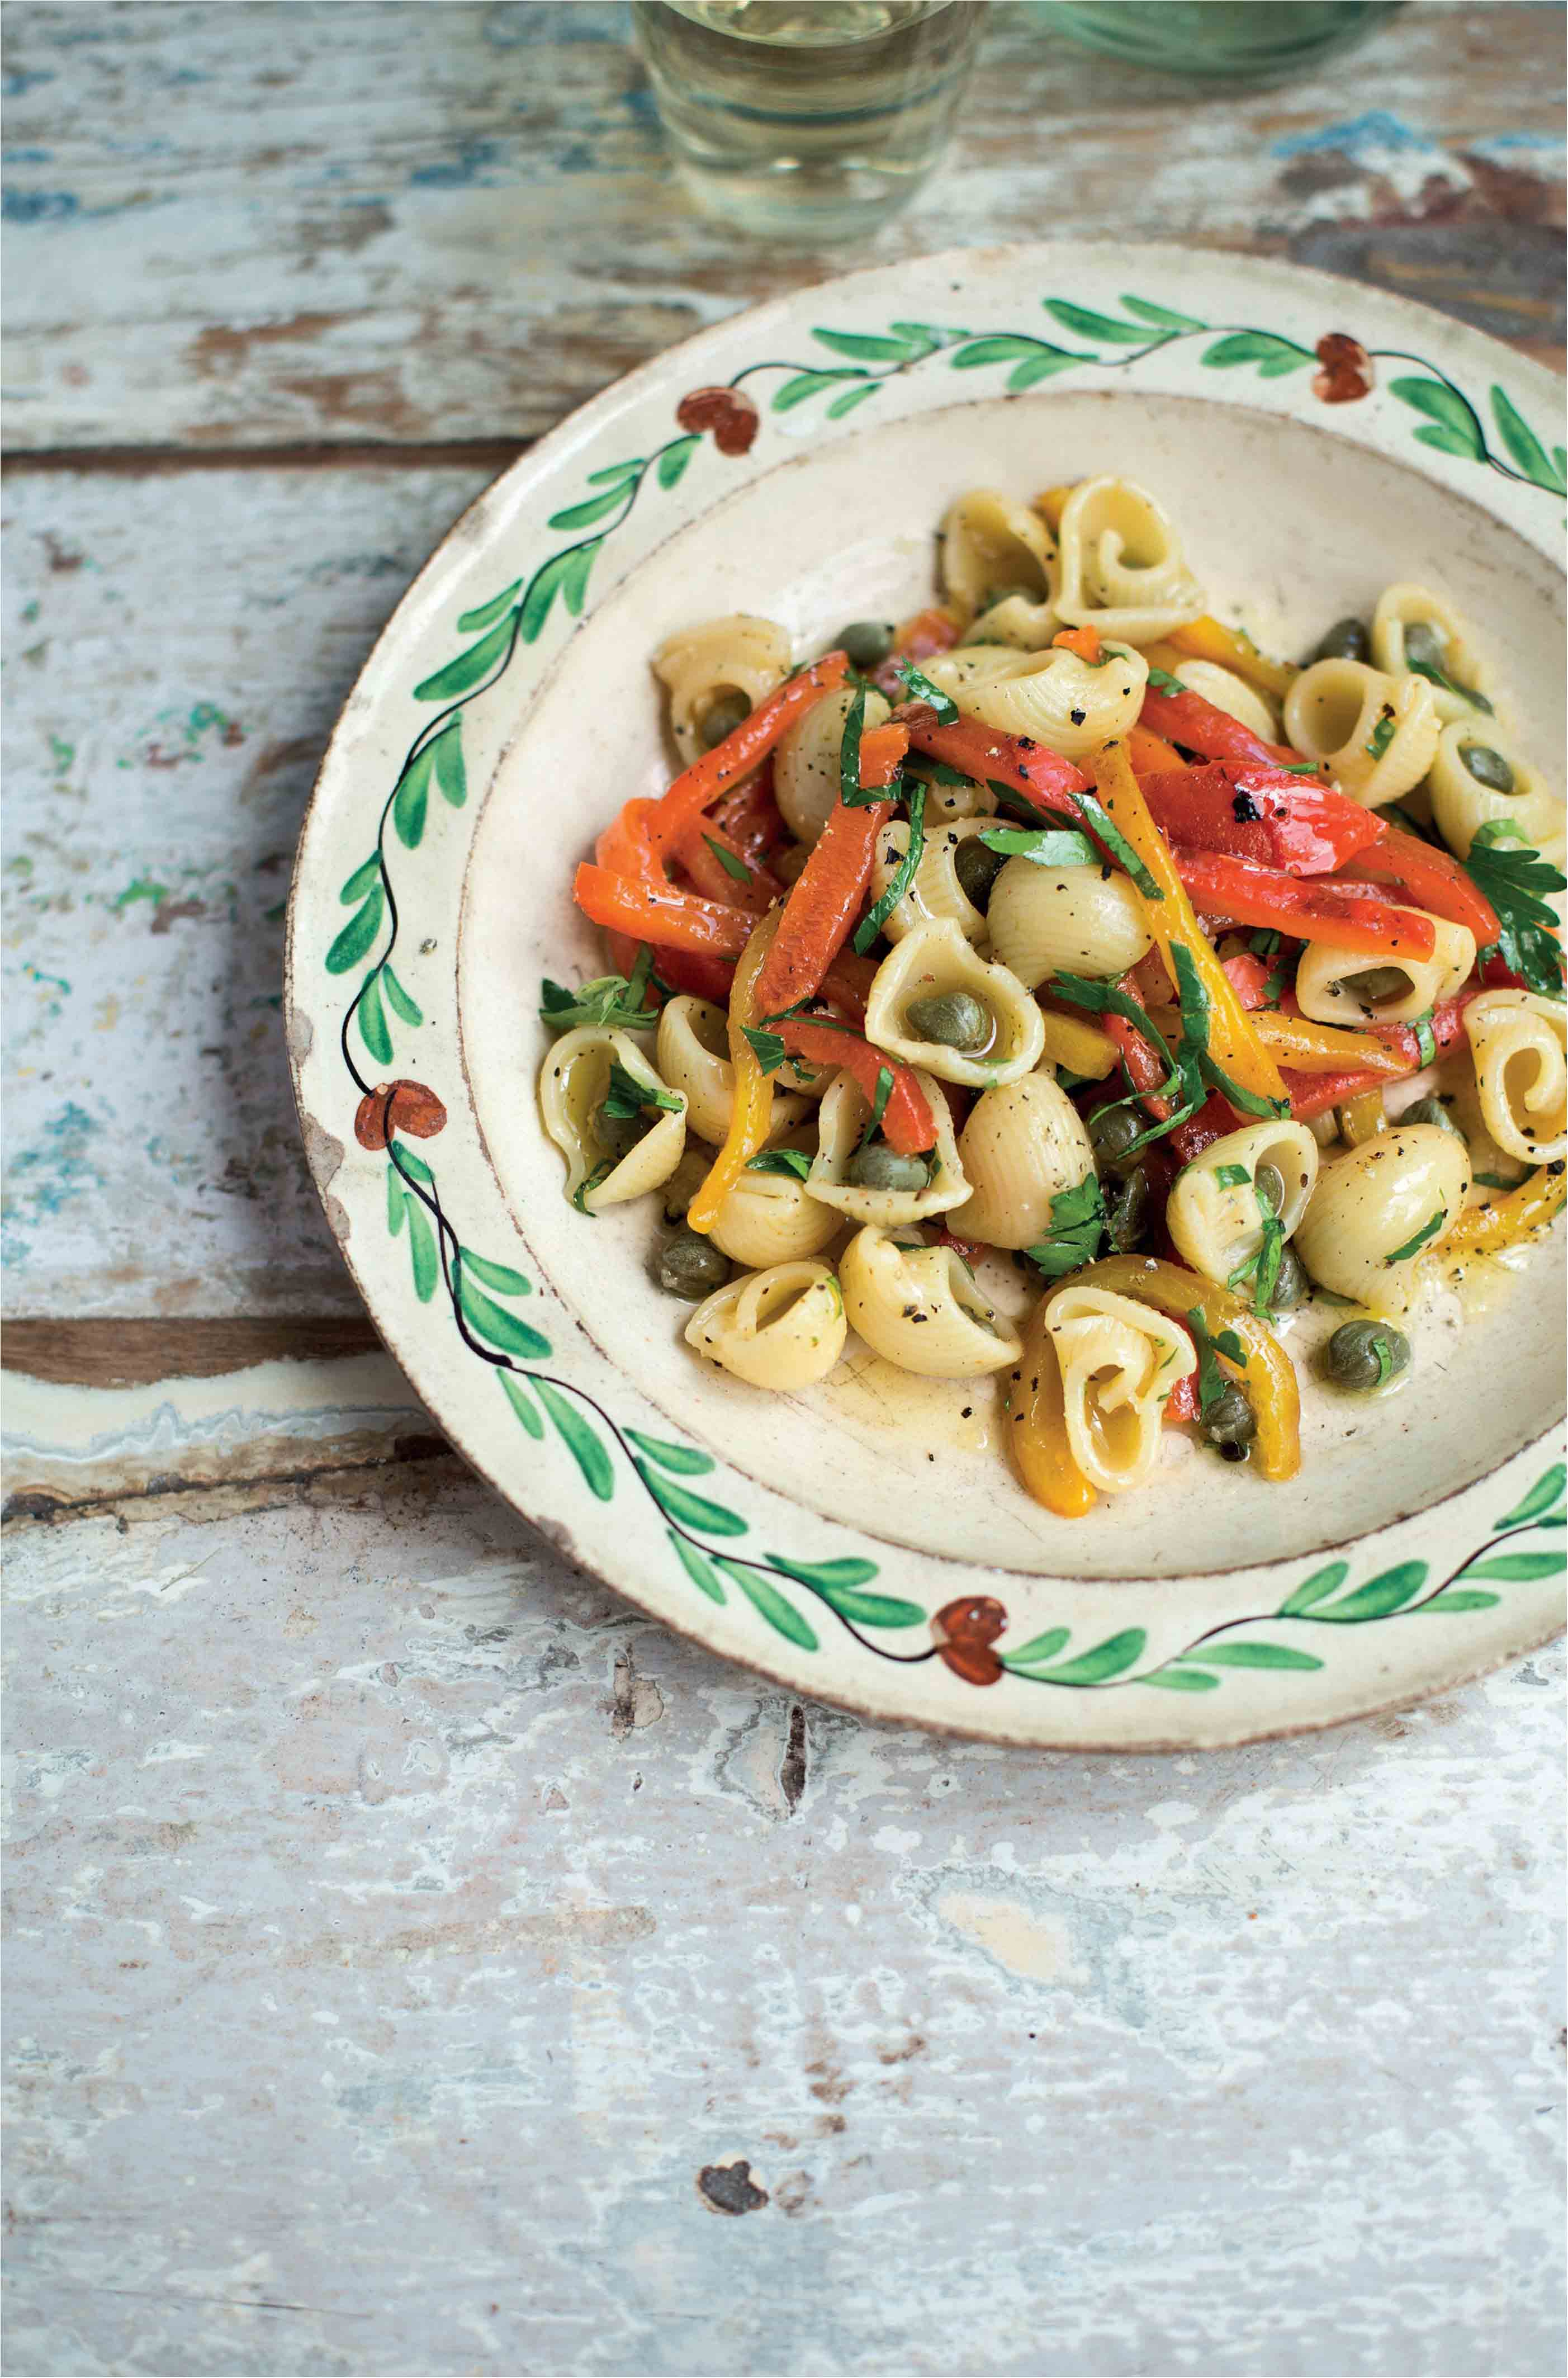 Salad of elbow pasta with peppers and capers